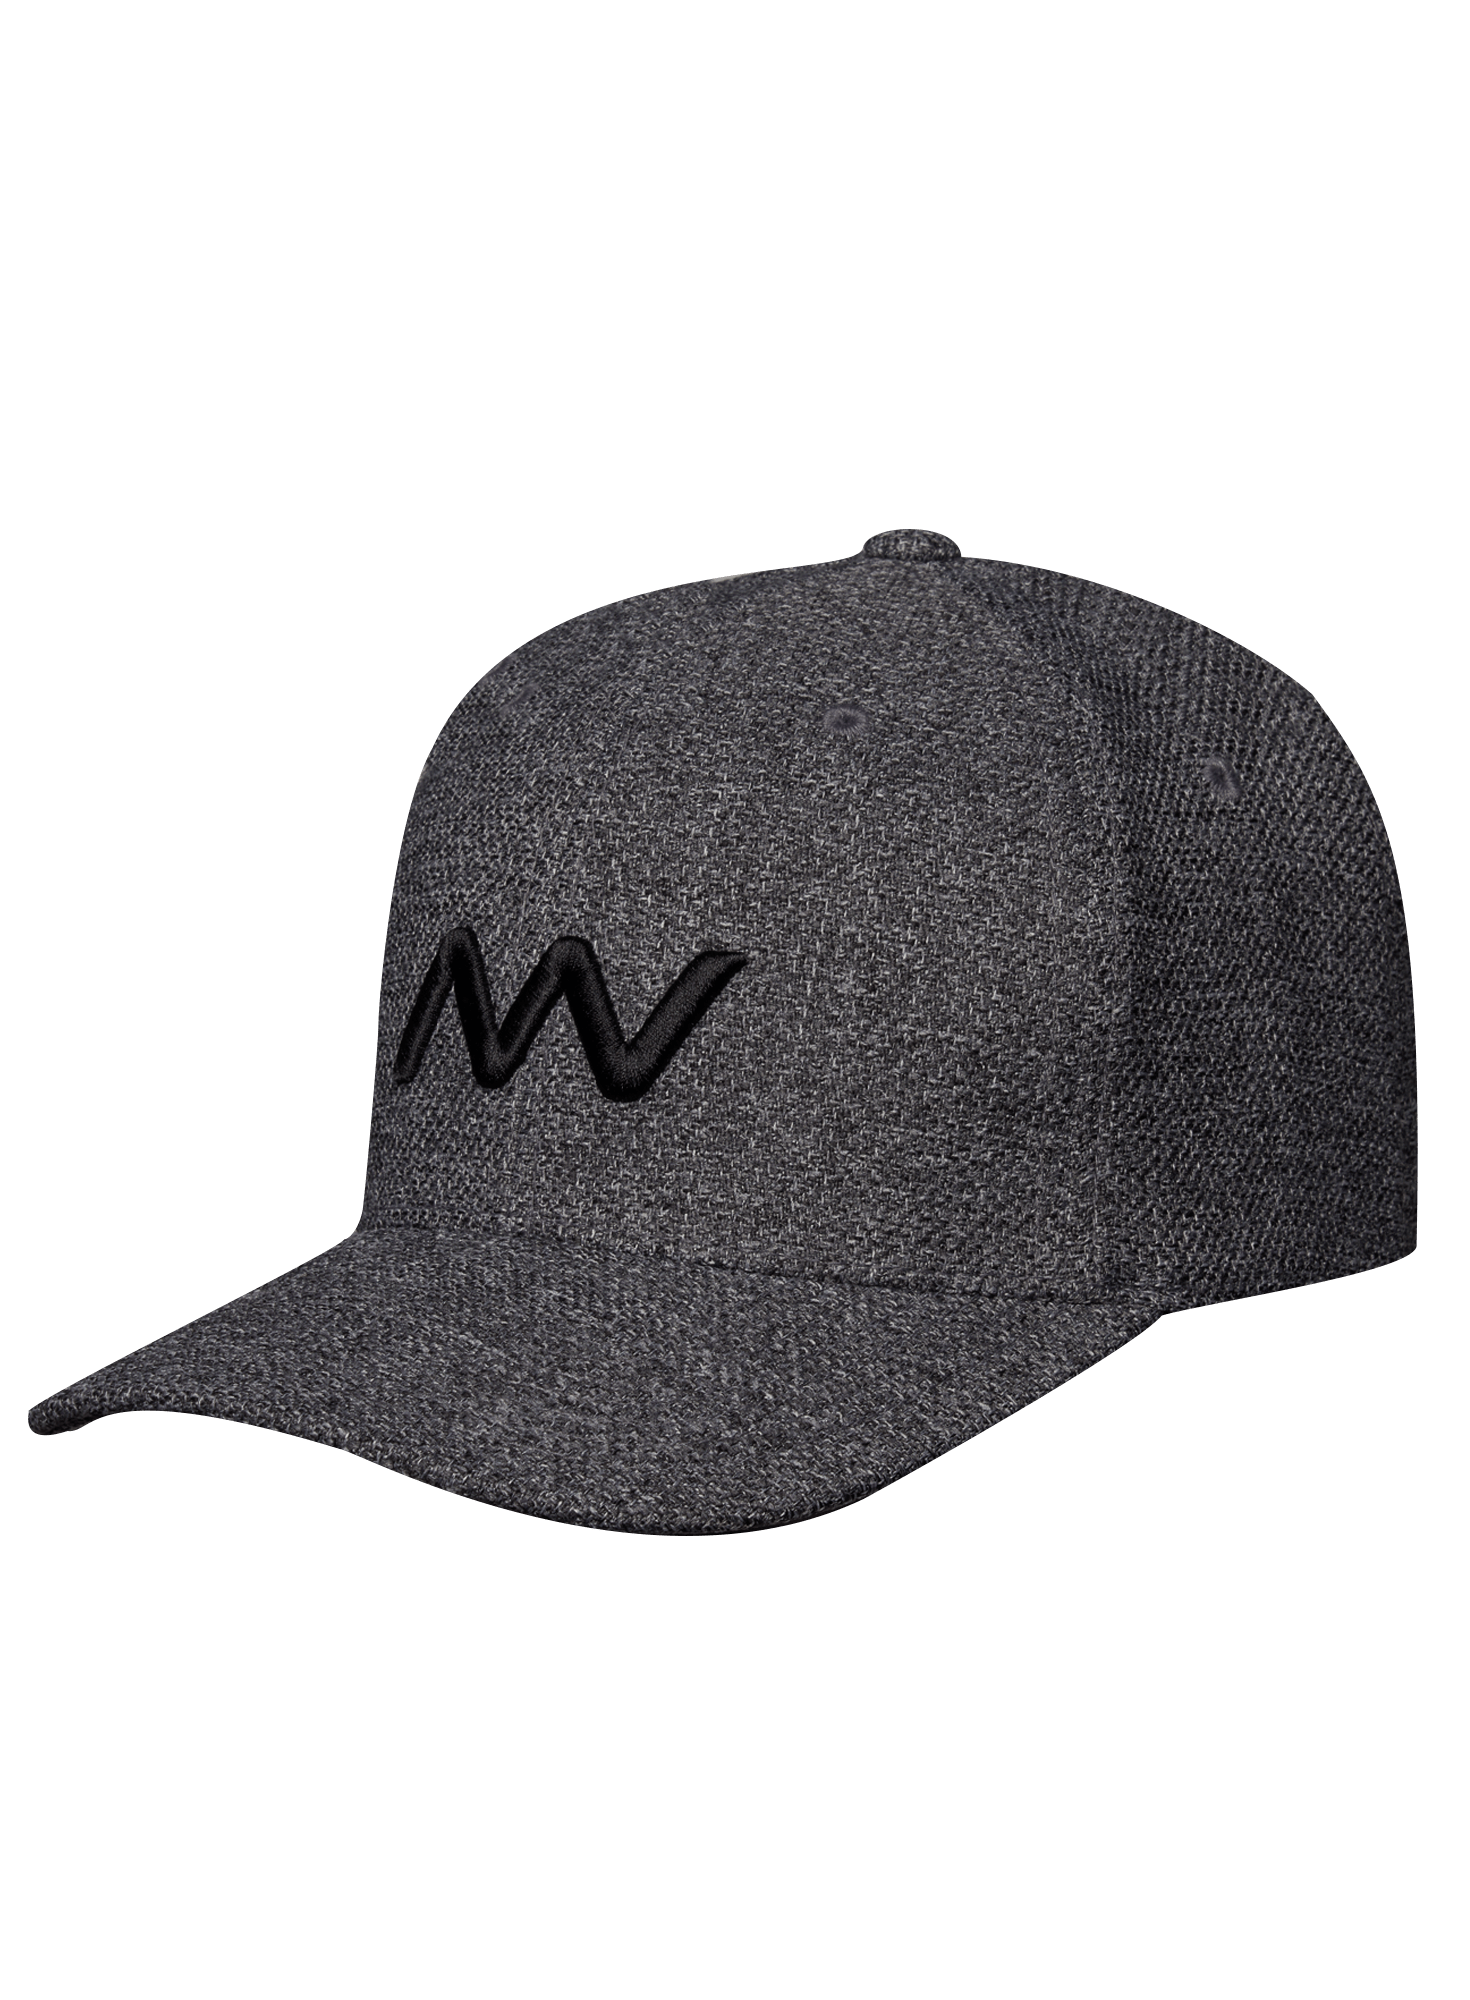 Helix Tech Knit Flexfit Ballcap